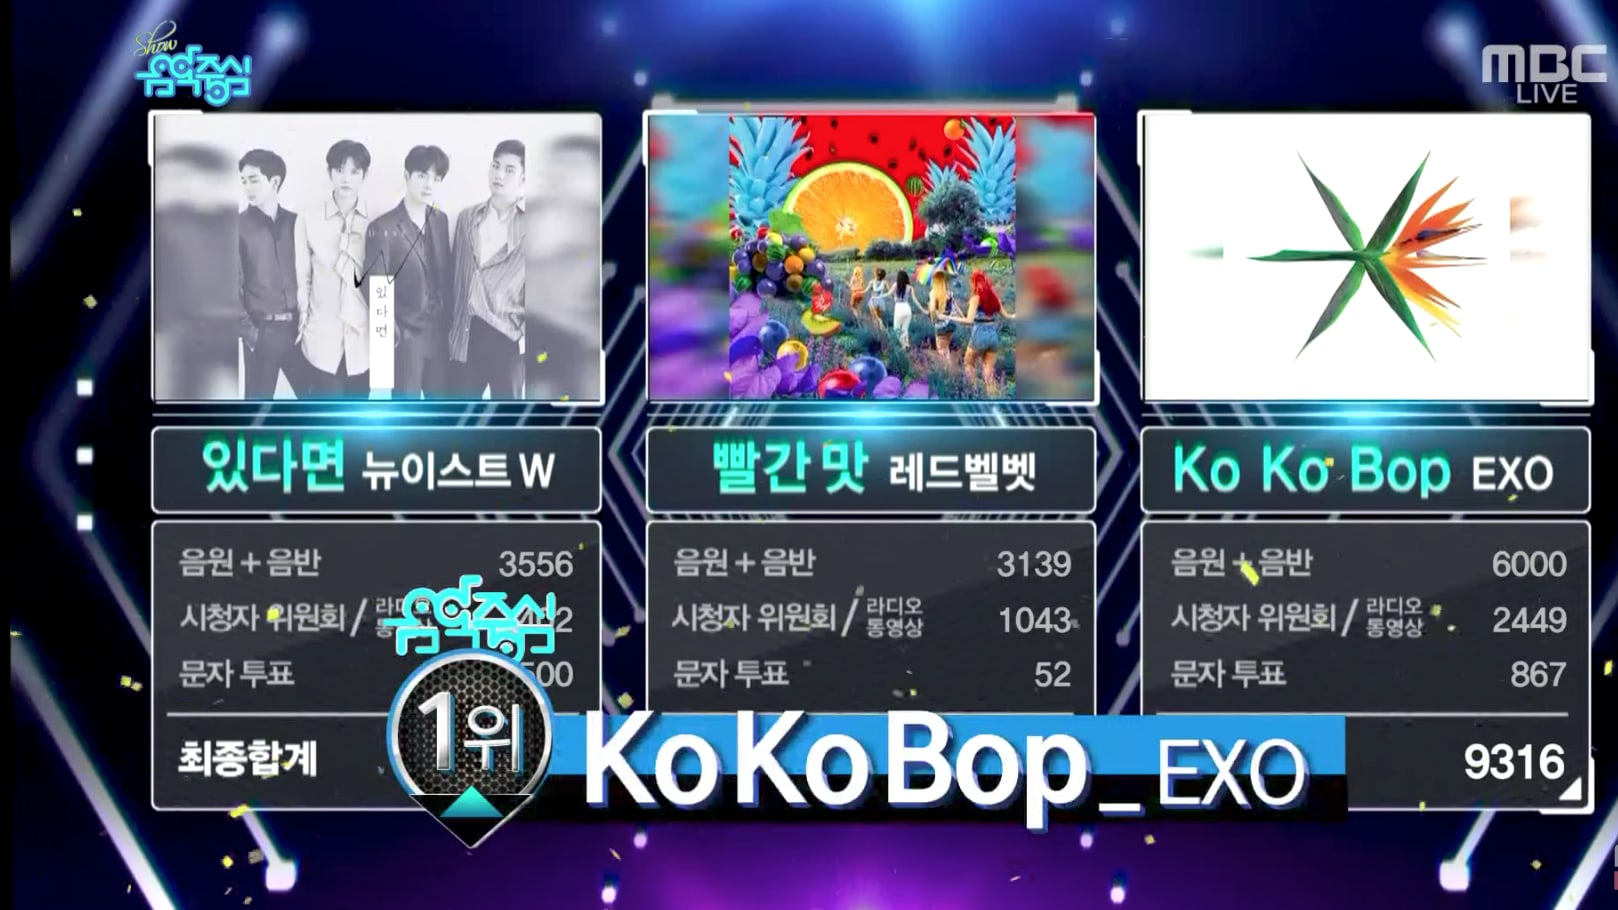 Watch: EXO Takes 8th Win For Ko Ko Bop On Music Core; Performances By KARD, WINNER, And More